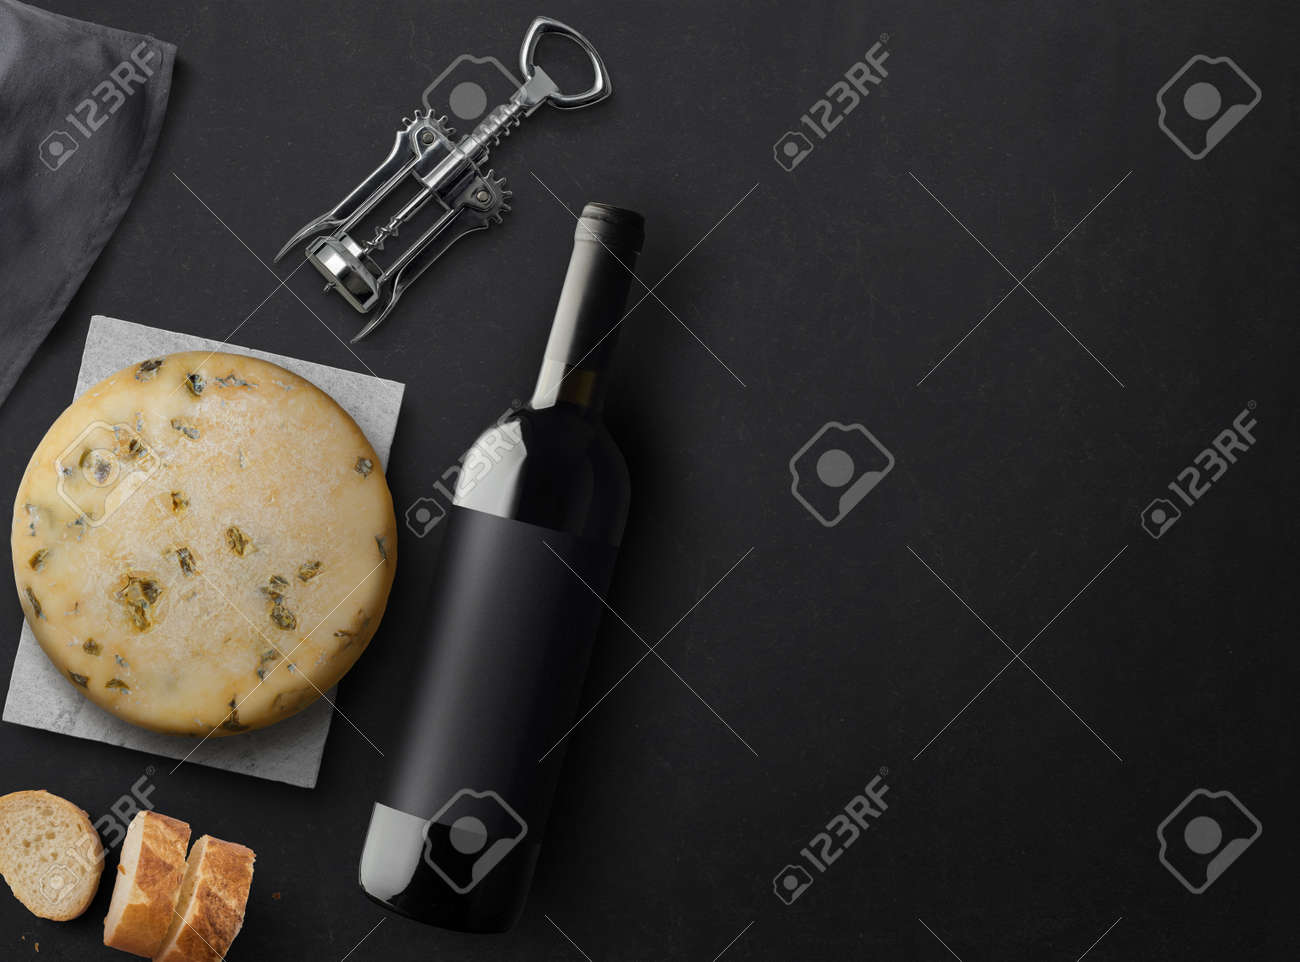 Red Wine bottle, corkscrew, cheese, wineglass, bread on black stone background, top view, copy space. Wine bottle mockup. Top view. 3d illustration. - 150522555